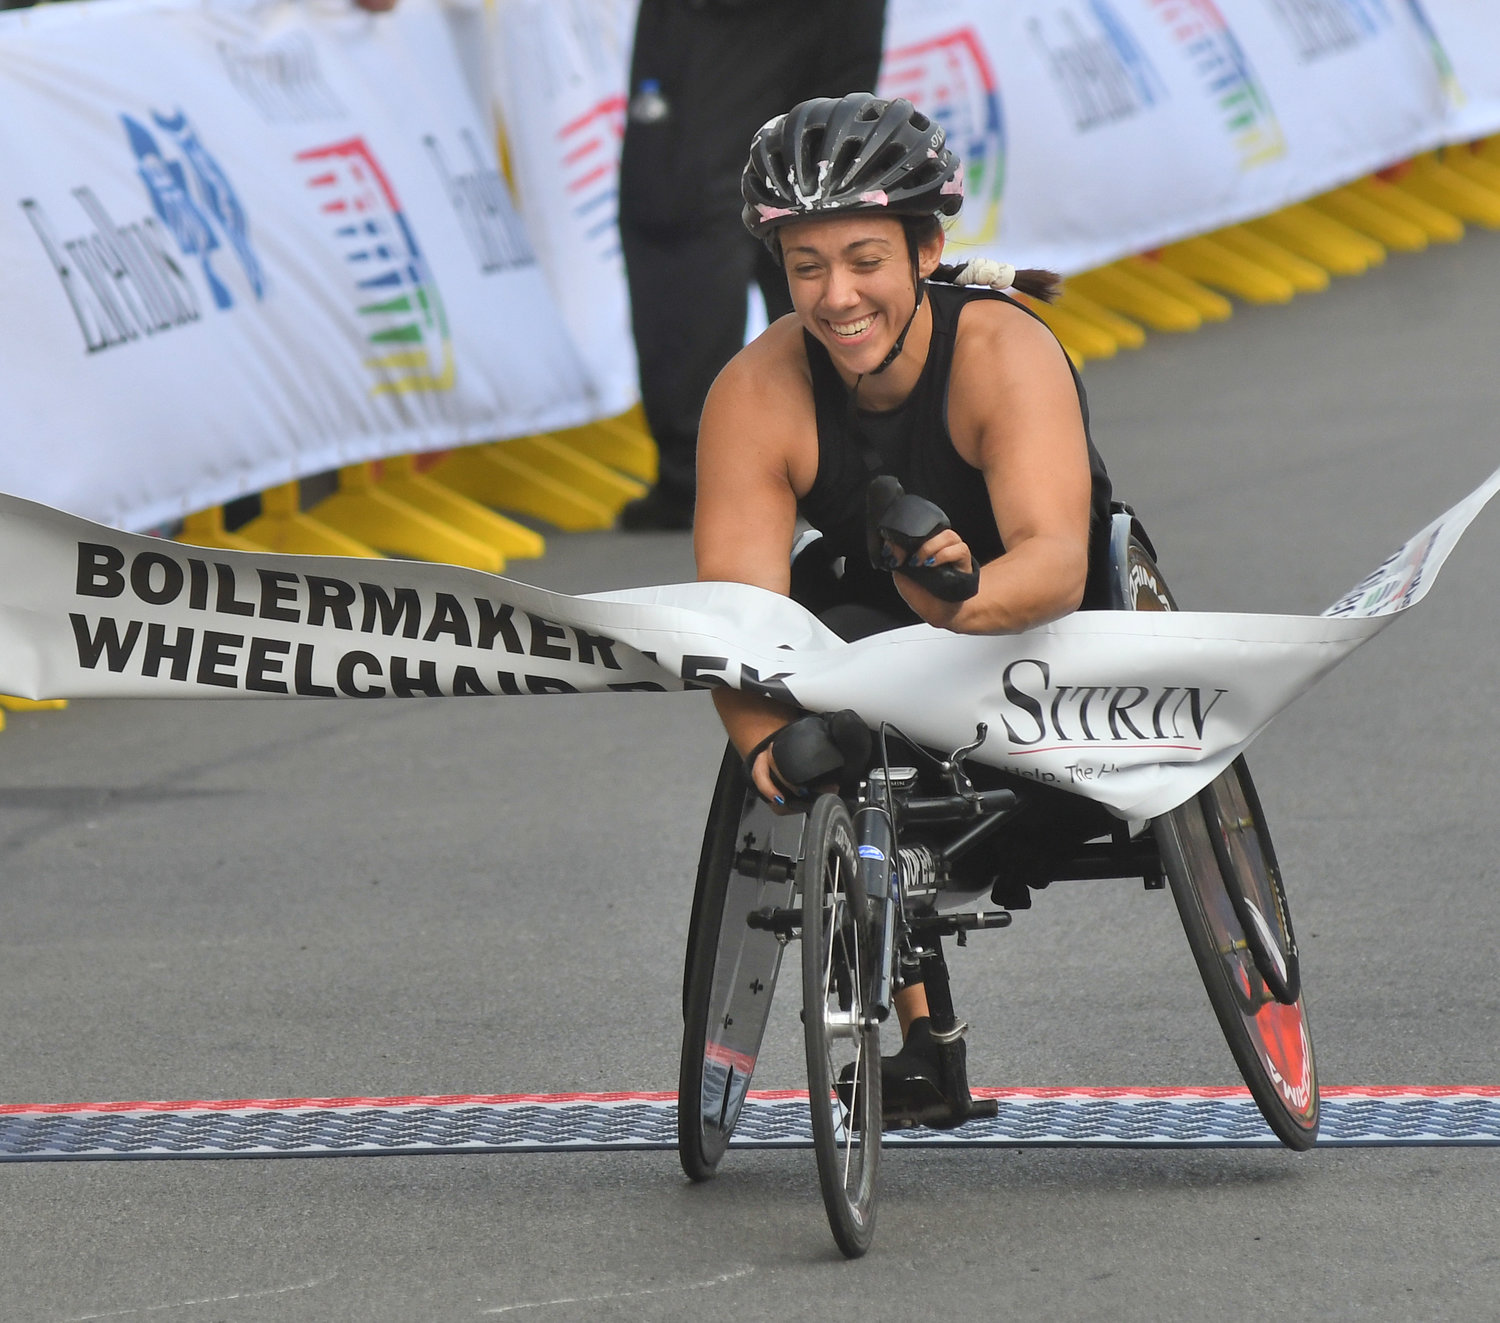 Women's wheelchair division winner